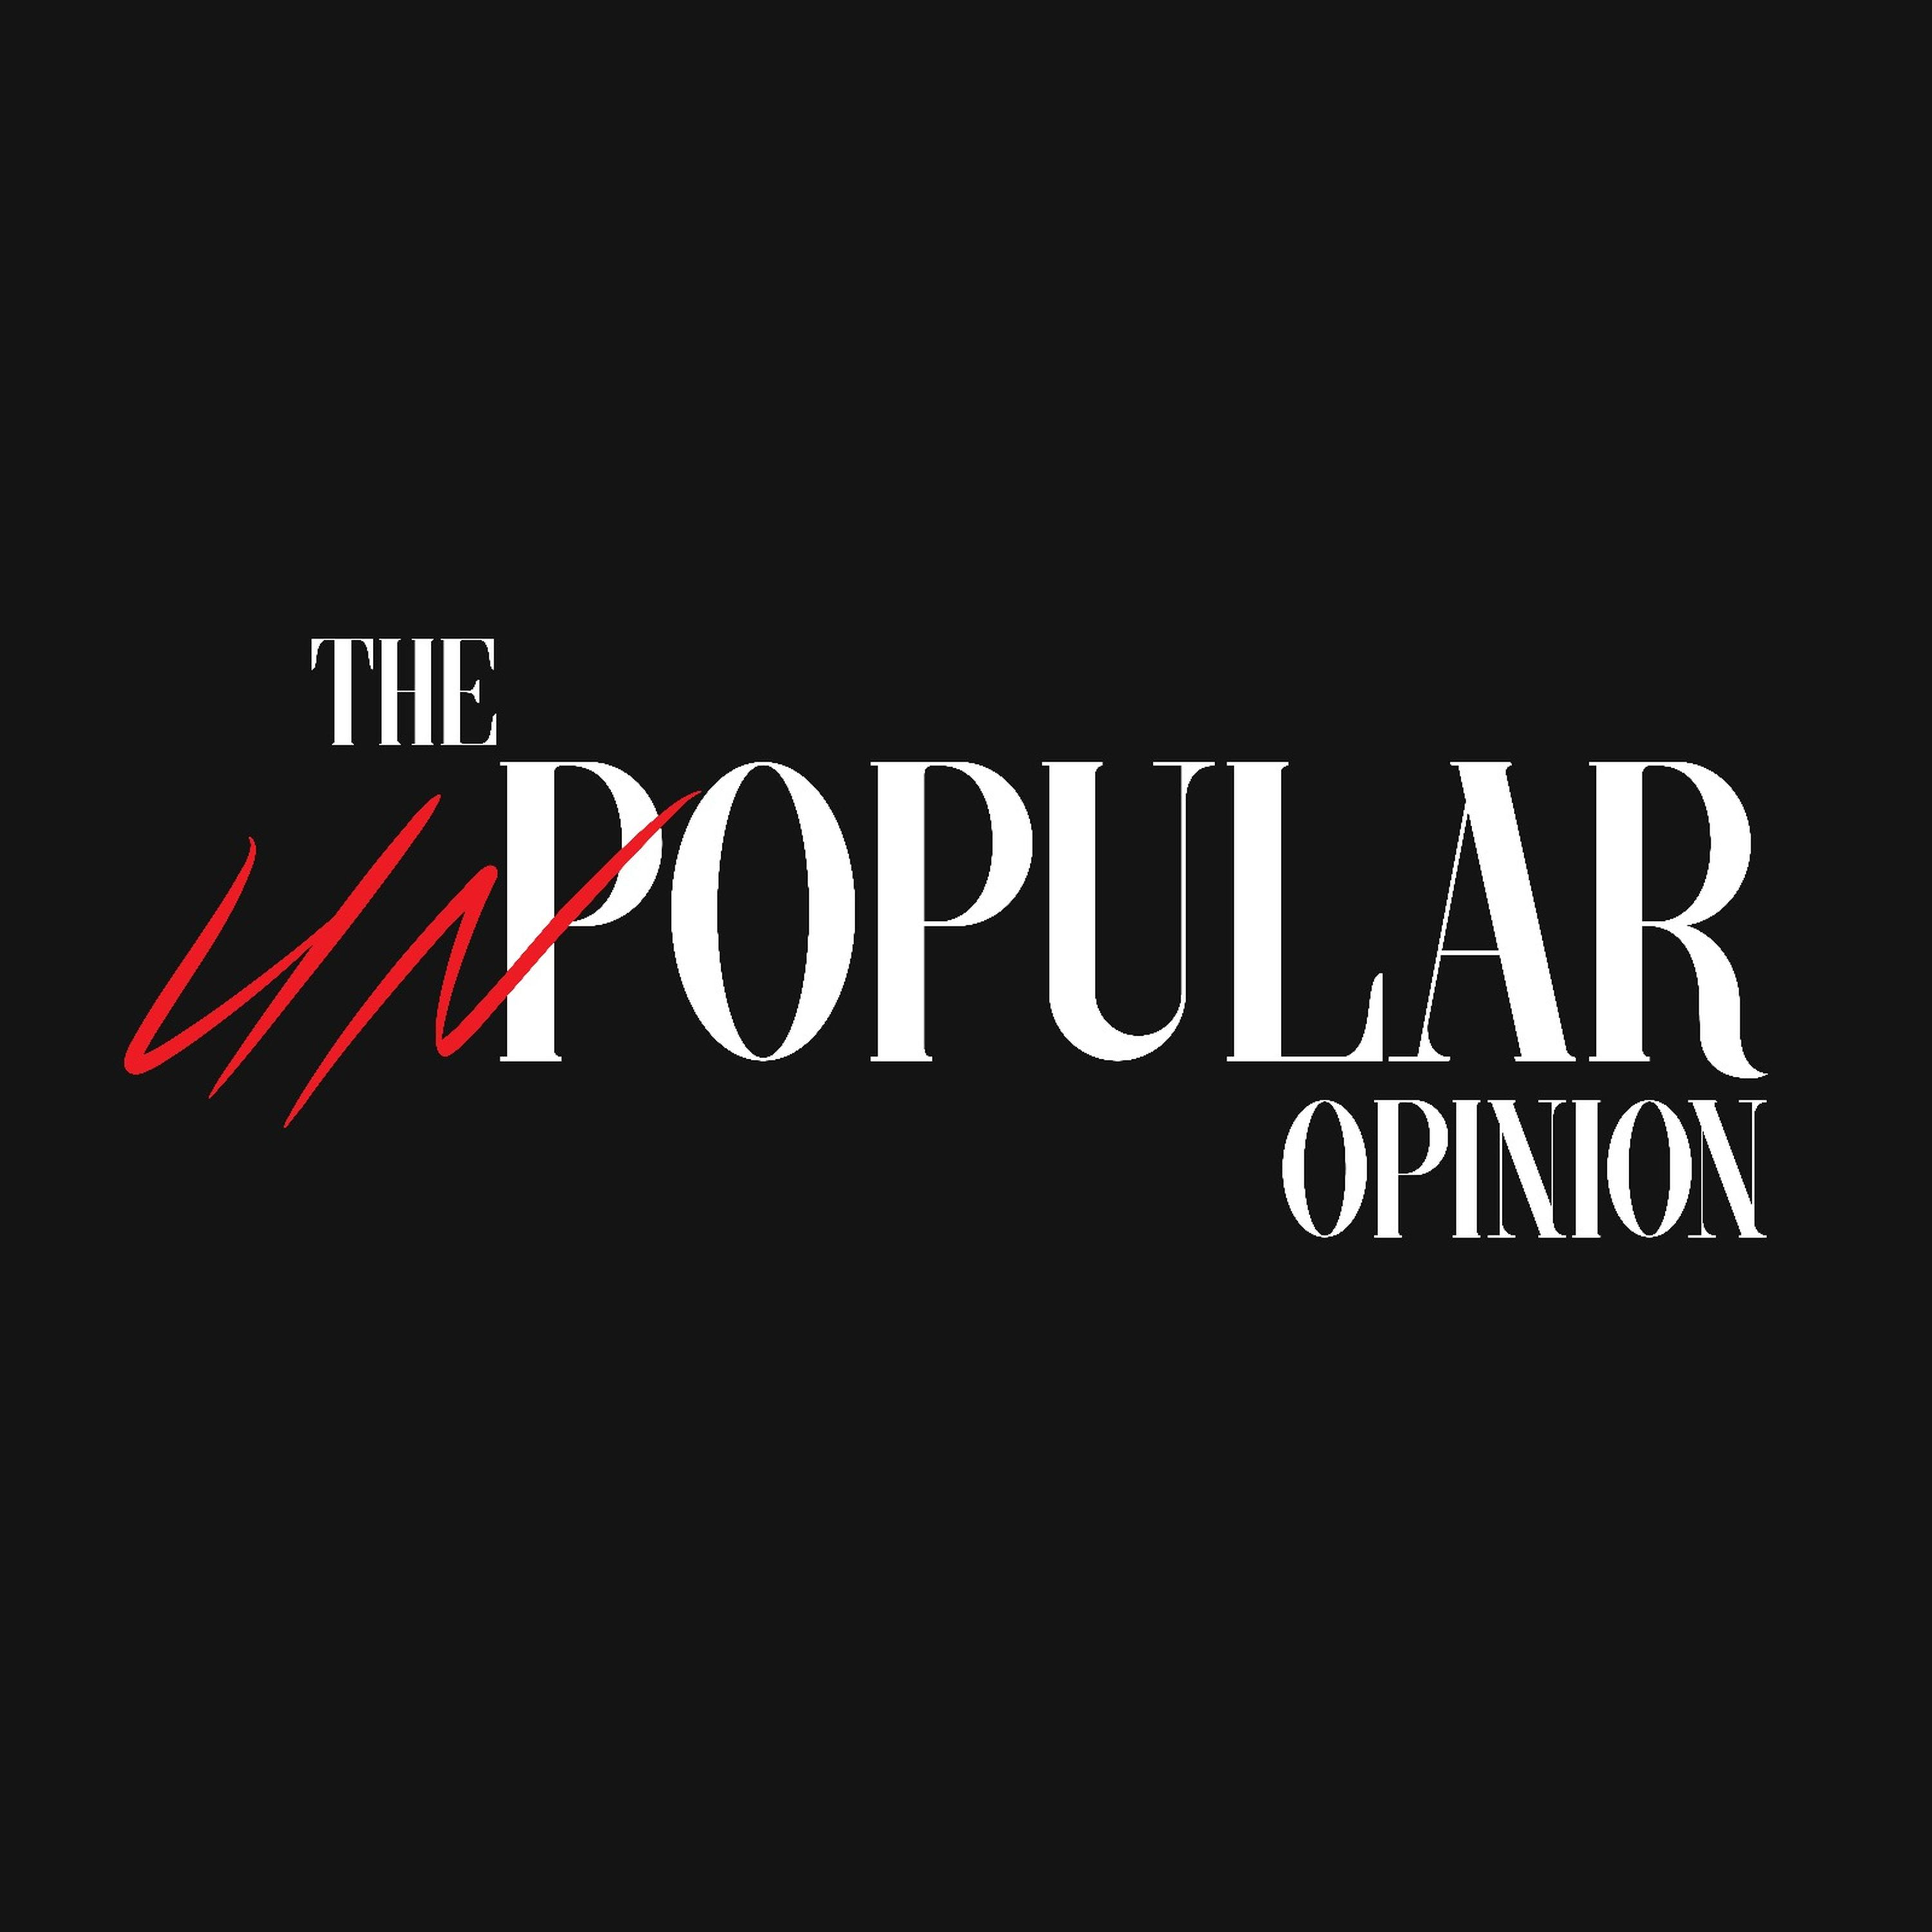 The Unpopular Opinion on Comedy